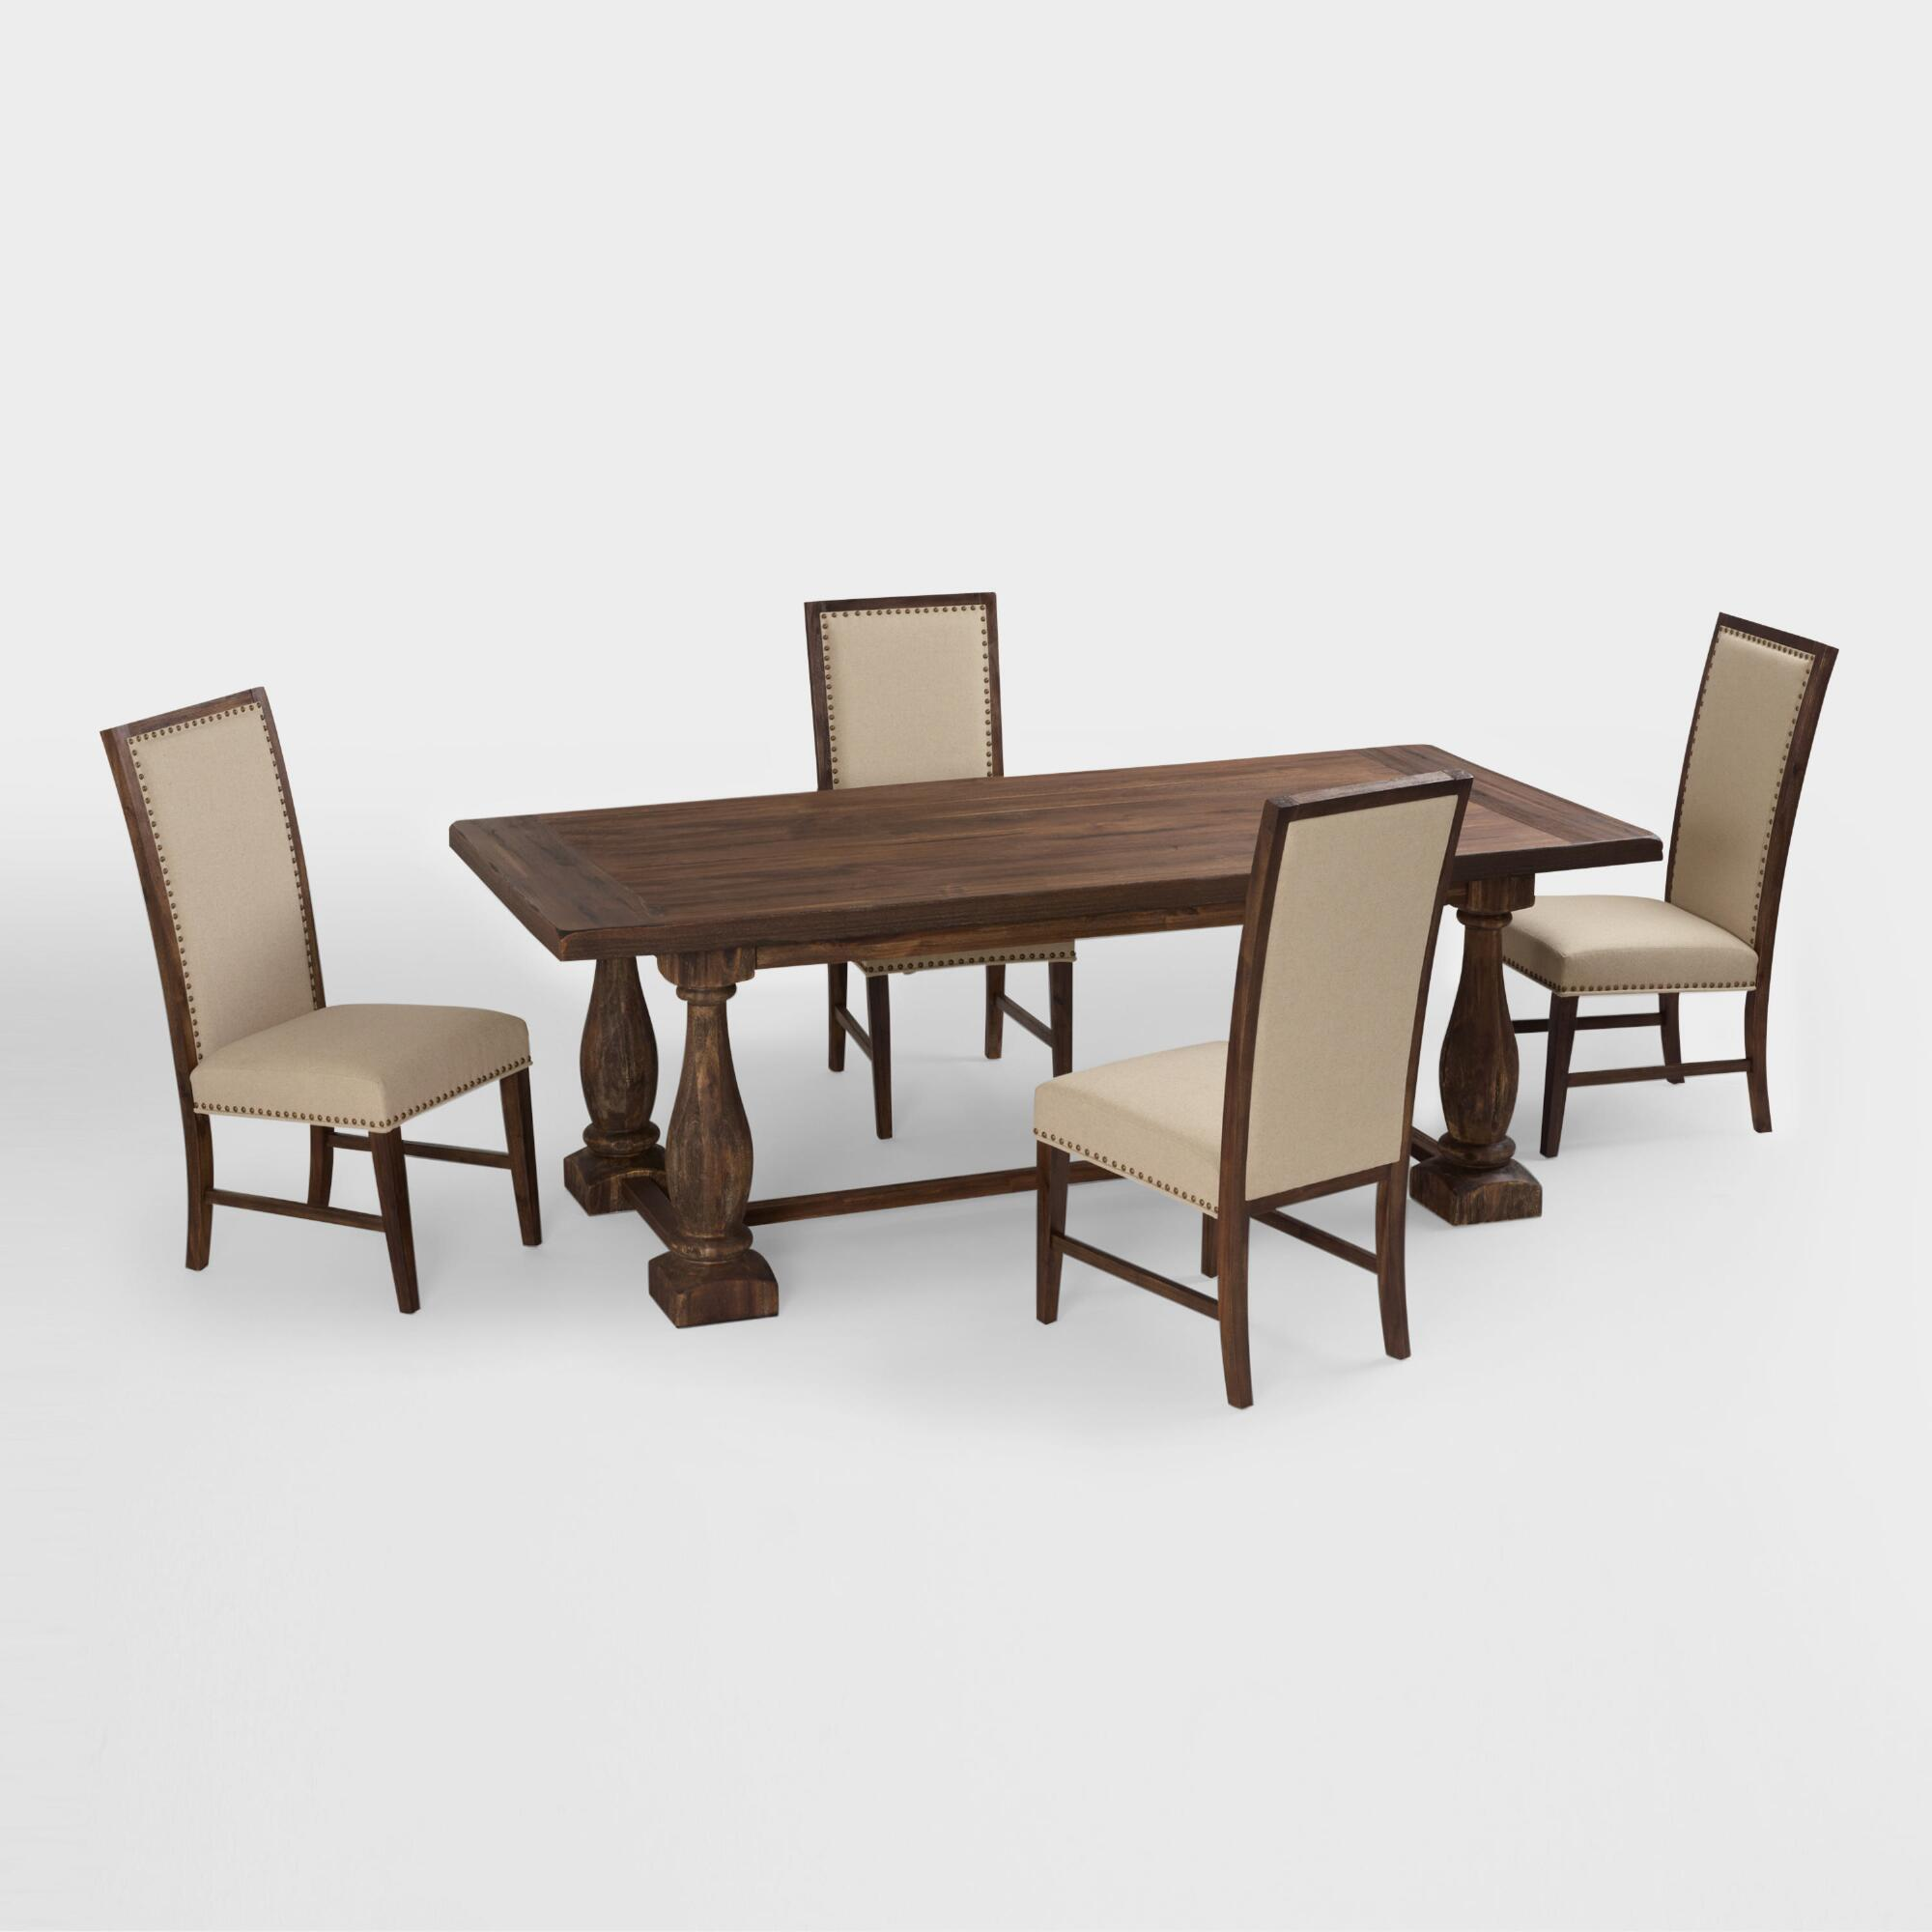 Fresh round dining table with chairs that tuck under for Dinette set with bench